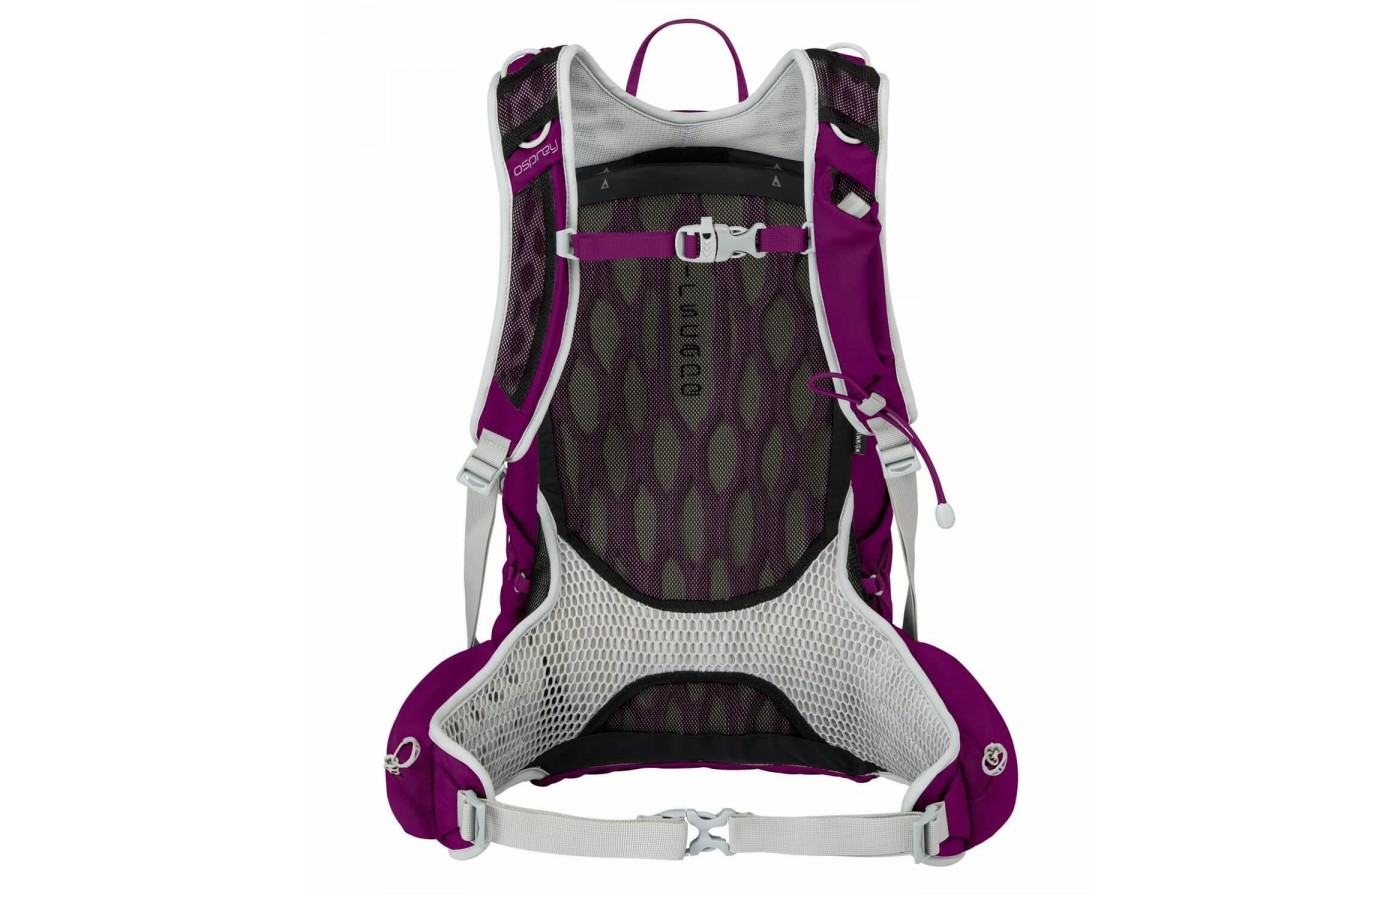 Osprey's women's fit products like the Tempest 20 offer a well-received more customized fit in part due to the placement of adjustable straps